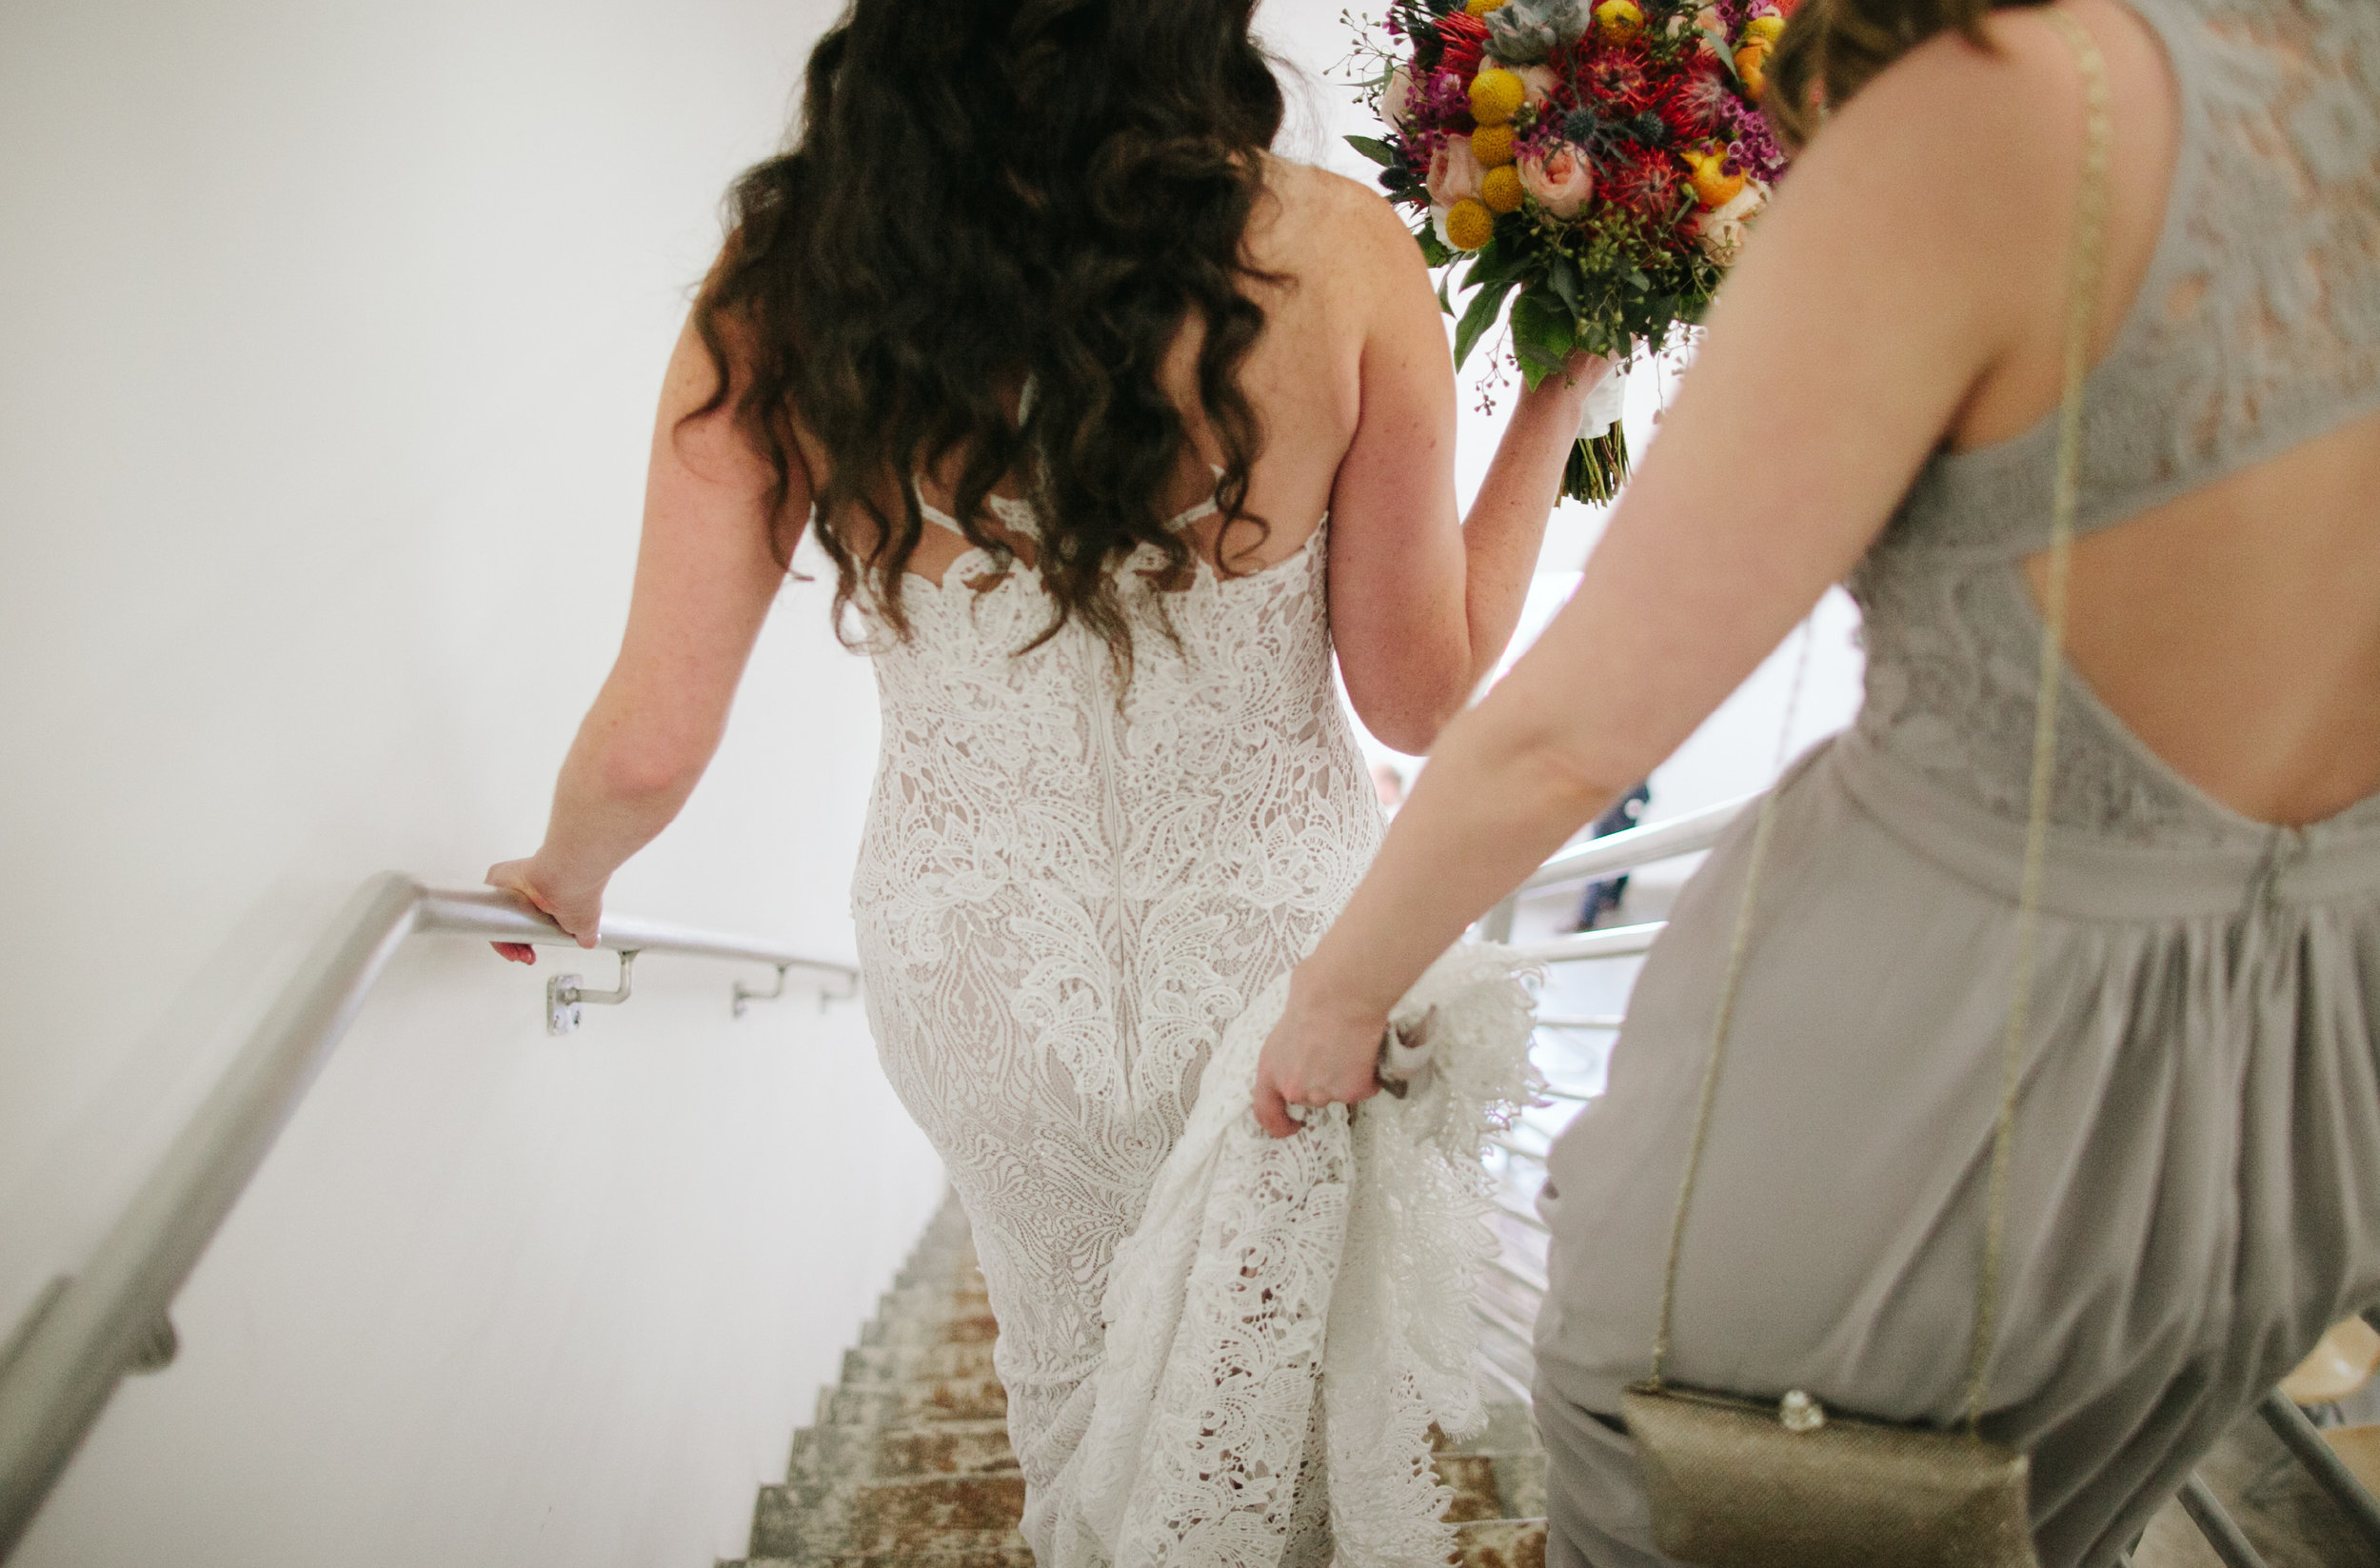 Wynwood Wedding at Rubell Family Collection in Dowtown Miami2.jpg